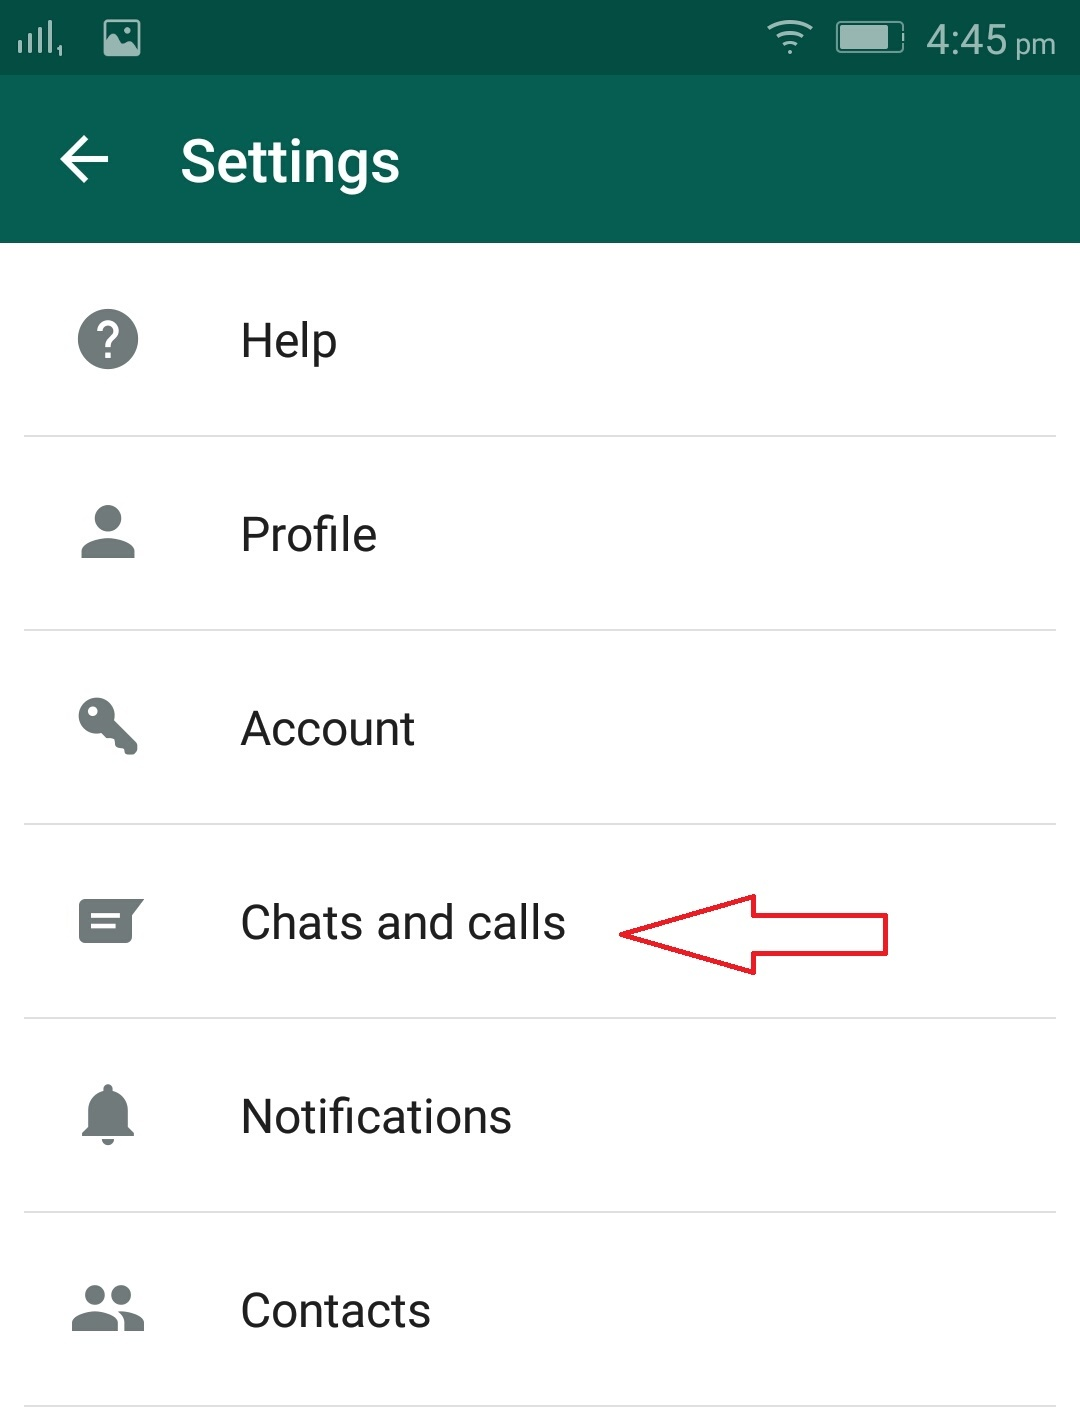 Click On Chats and Calls